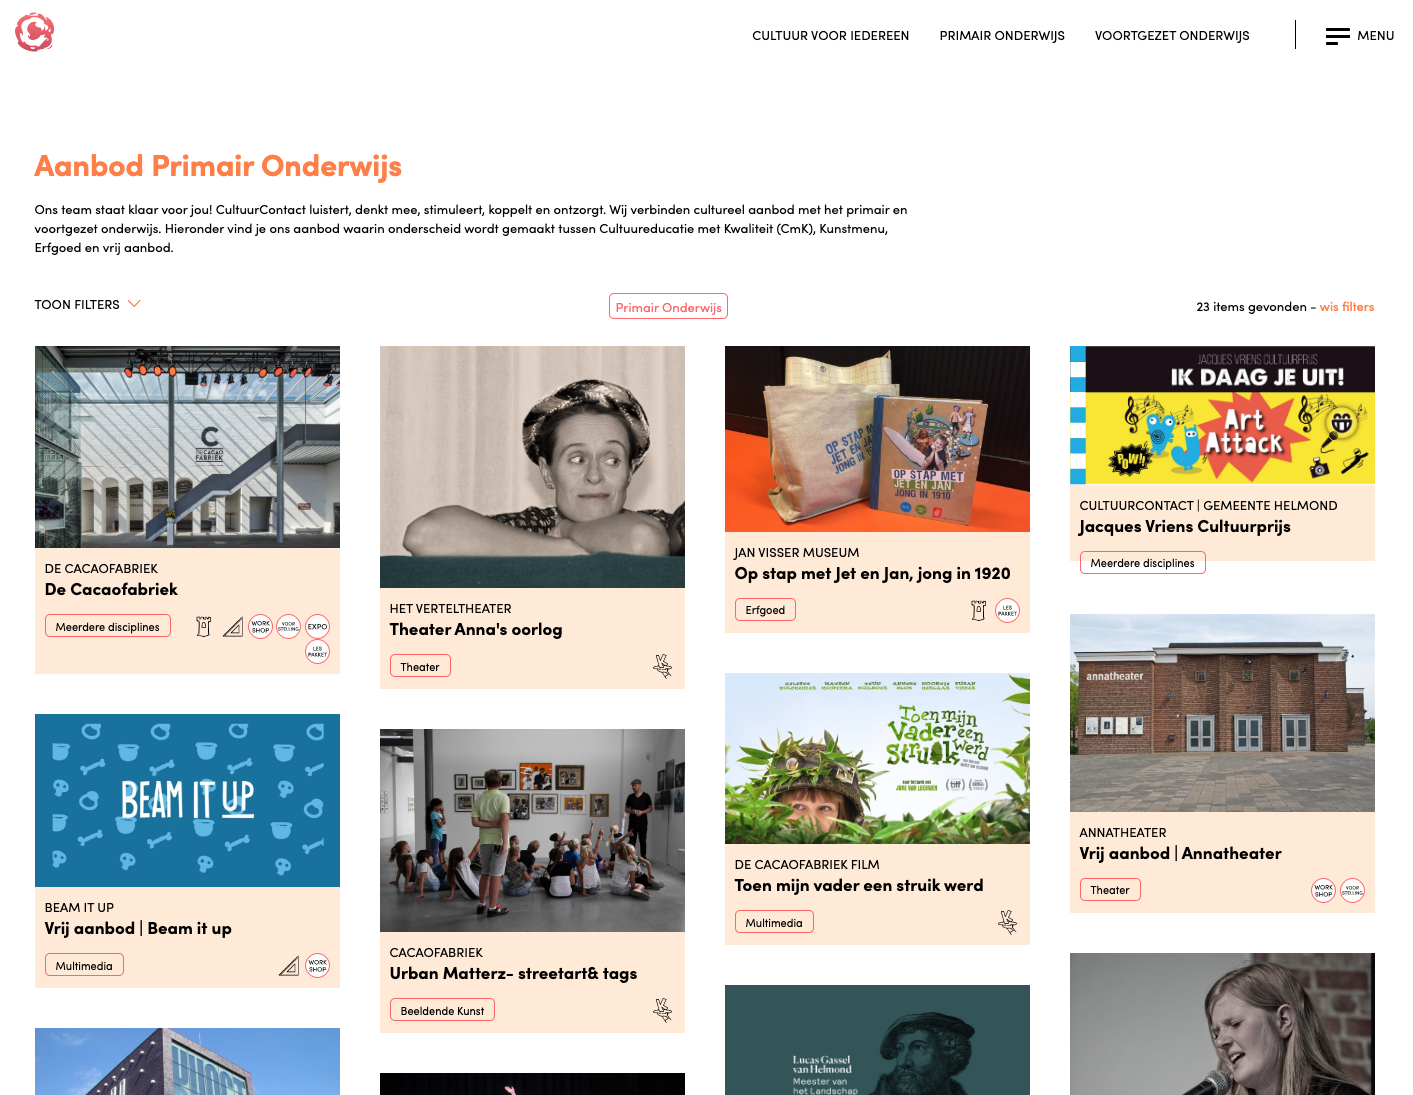 Cultuur Contact website 2020